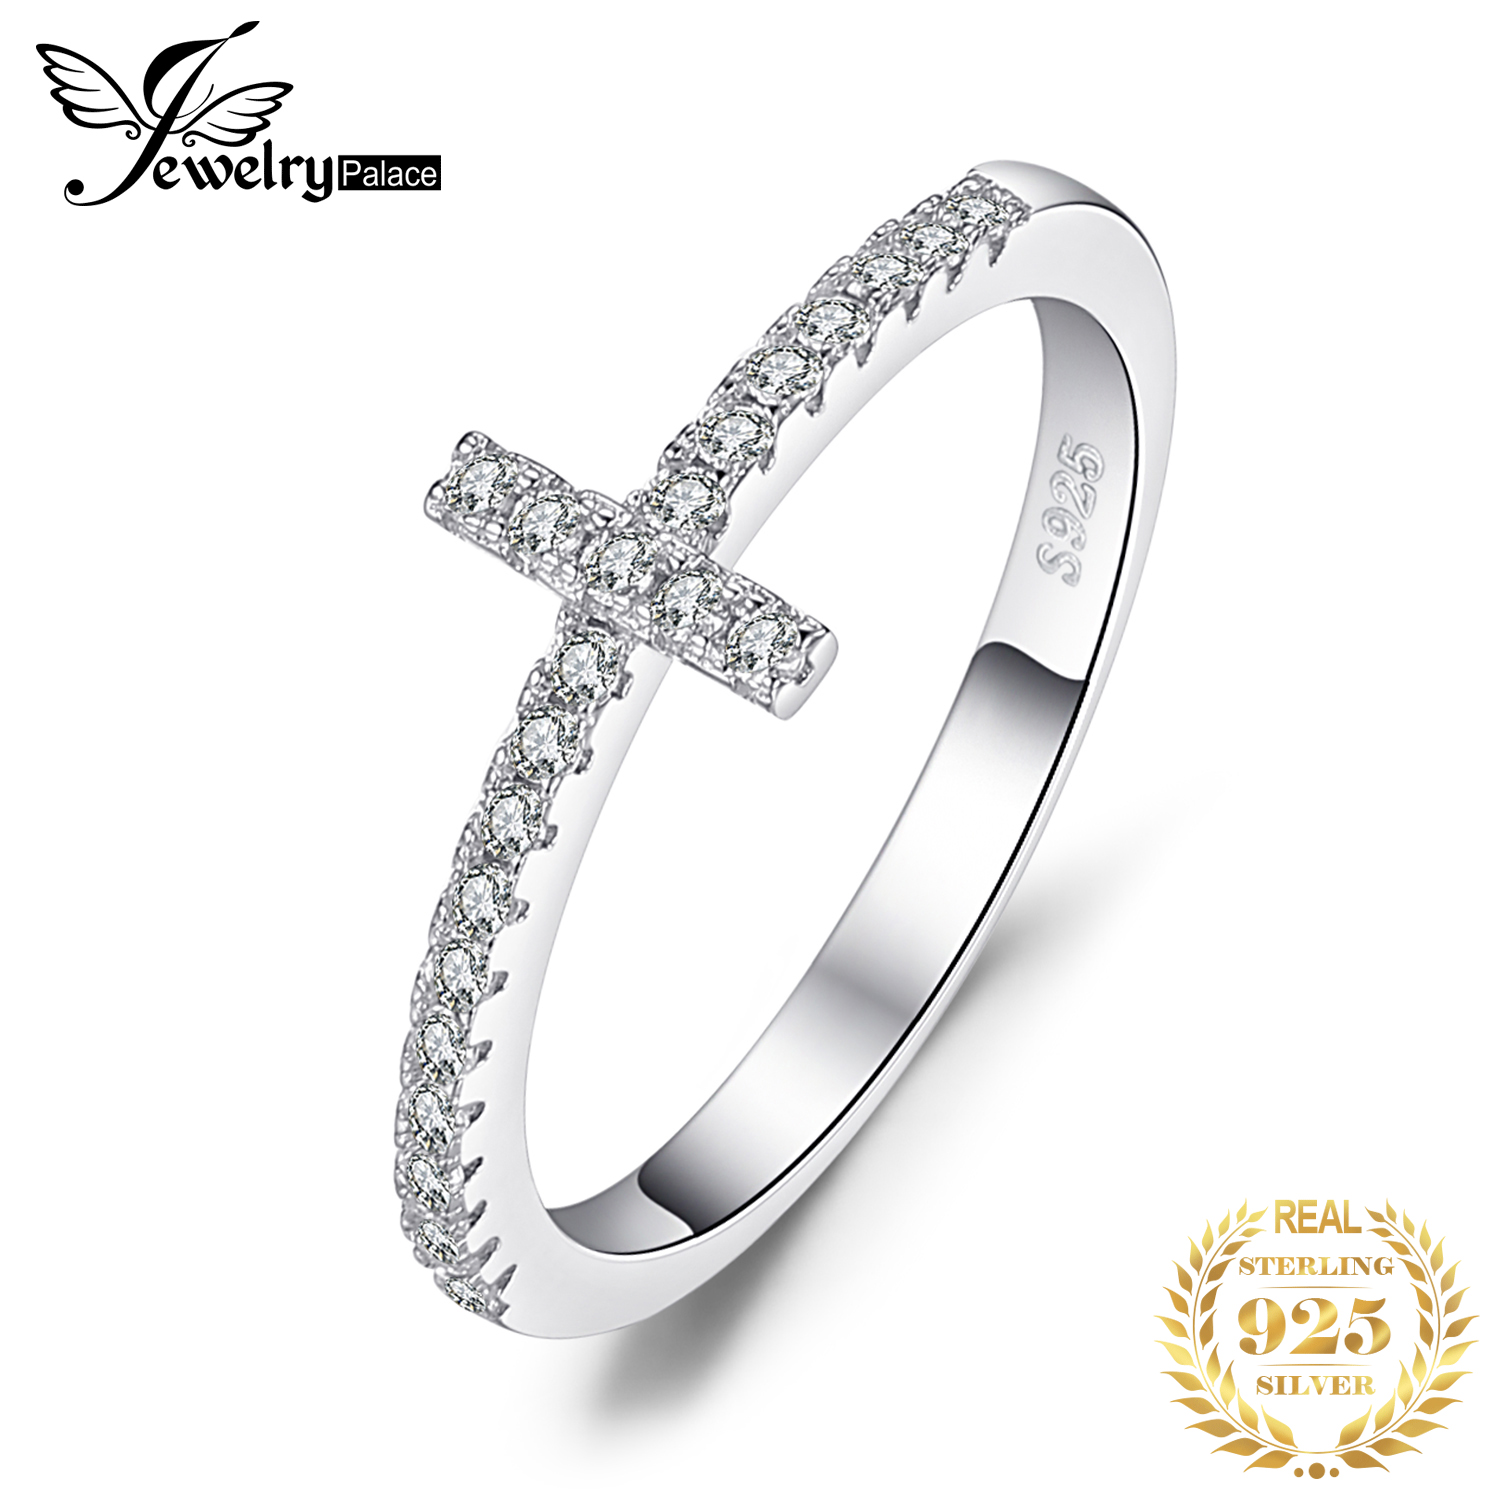 Jewelrypalace asli aaa zirconia wedding rings mode palang bentuk band murni 925 sterling silver cincin perhiasan cincin untuk wanita